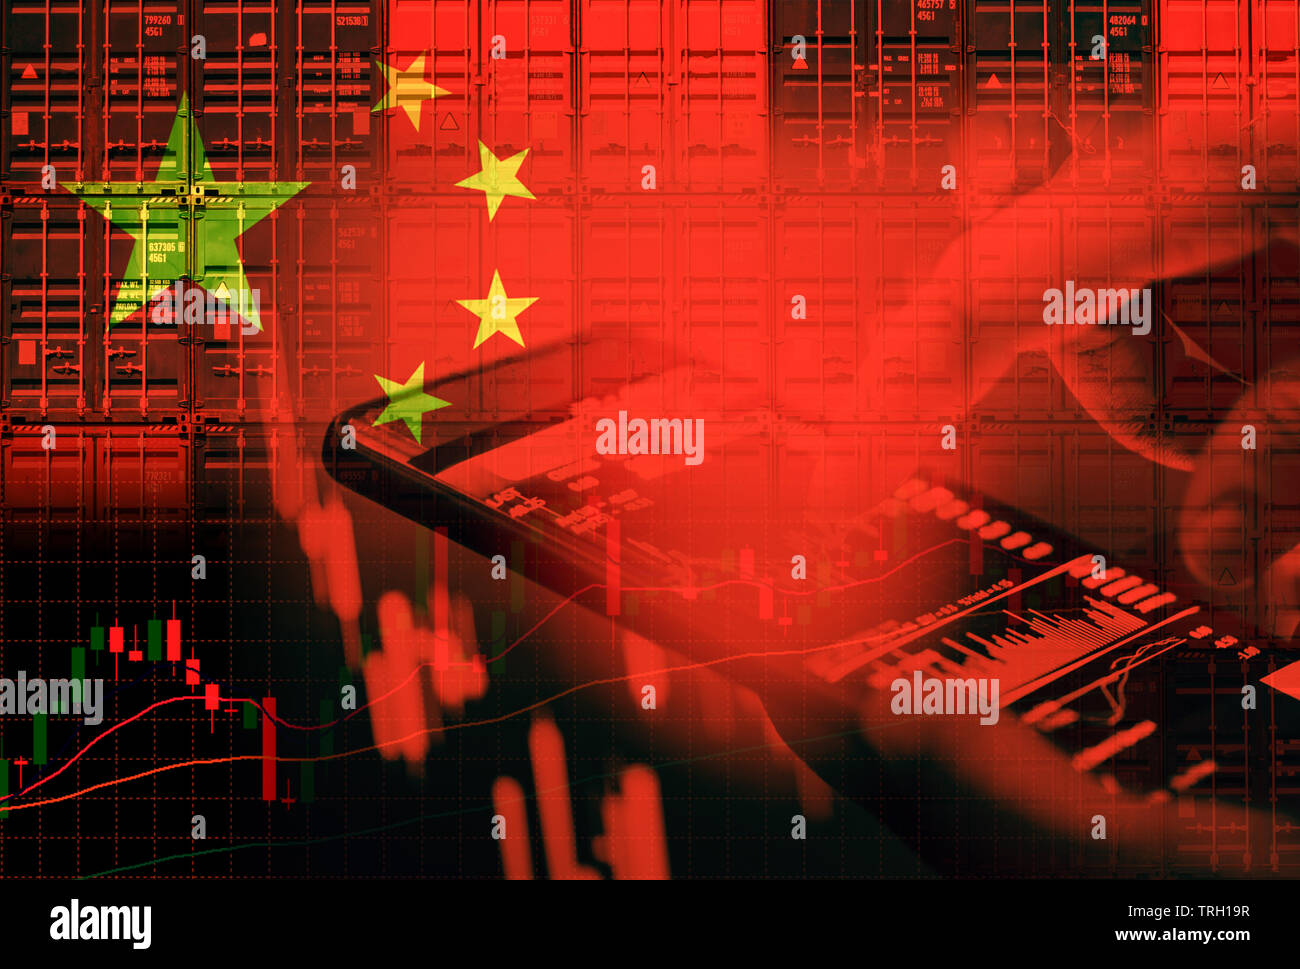 China stock market / Shanghai stock exchange crisis economy